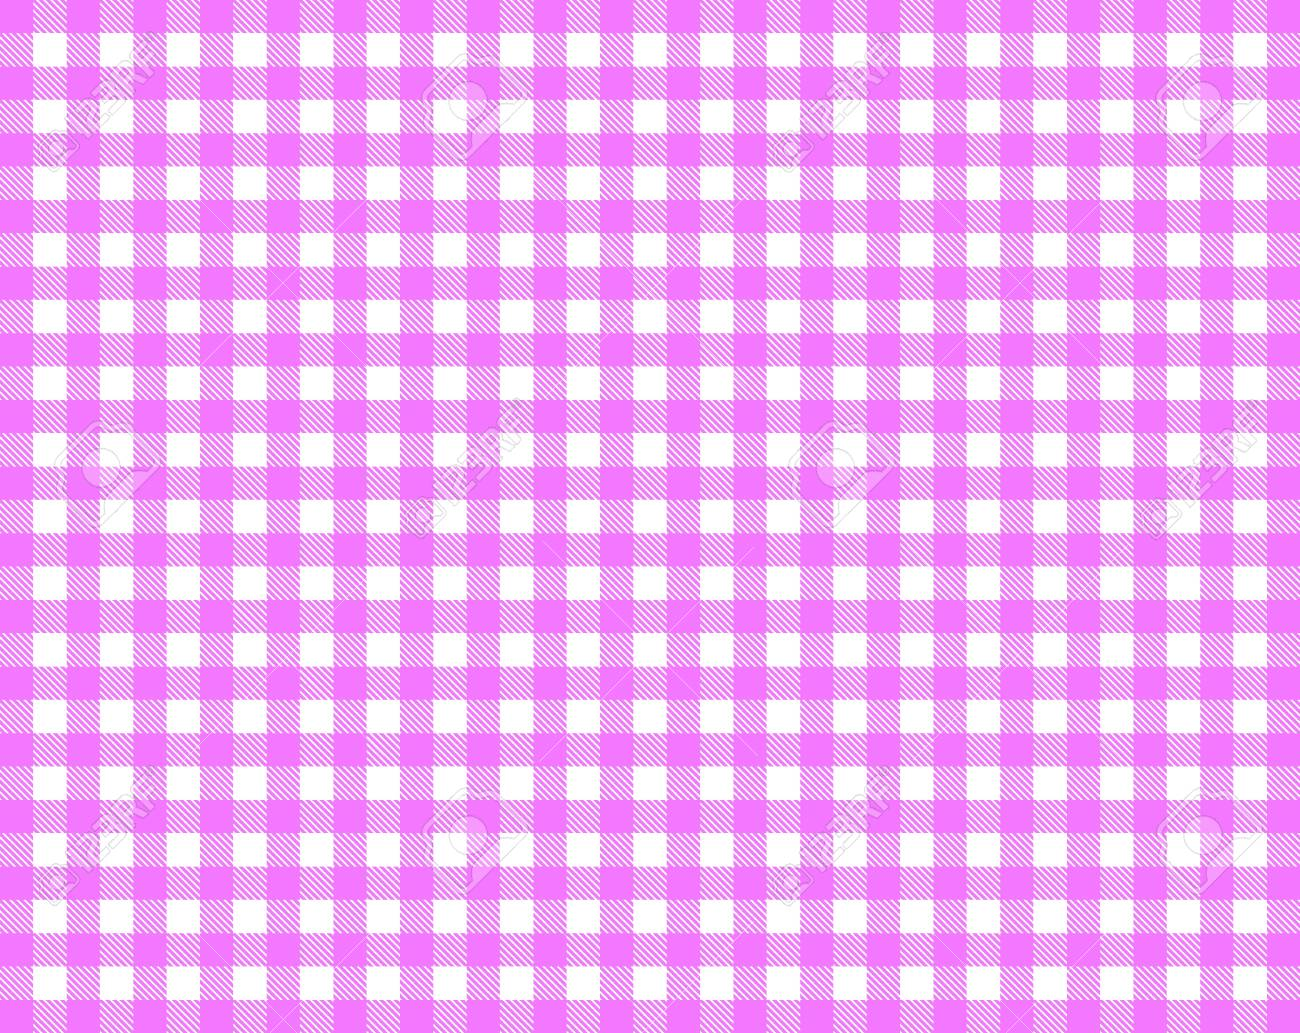 Pink White Checkered Tablecloth Stock Photo   13753745